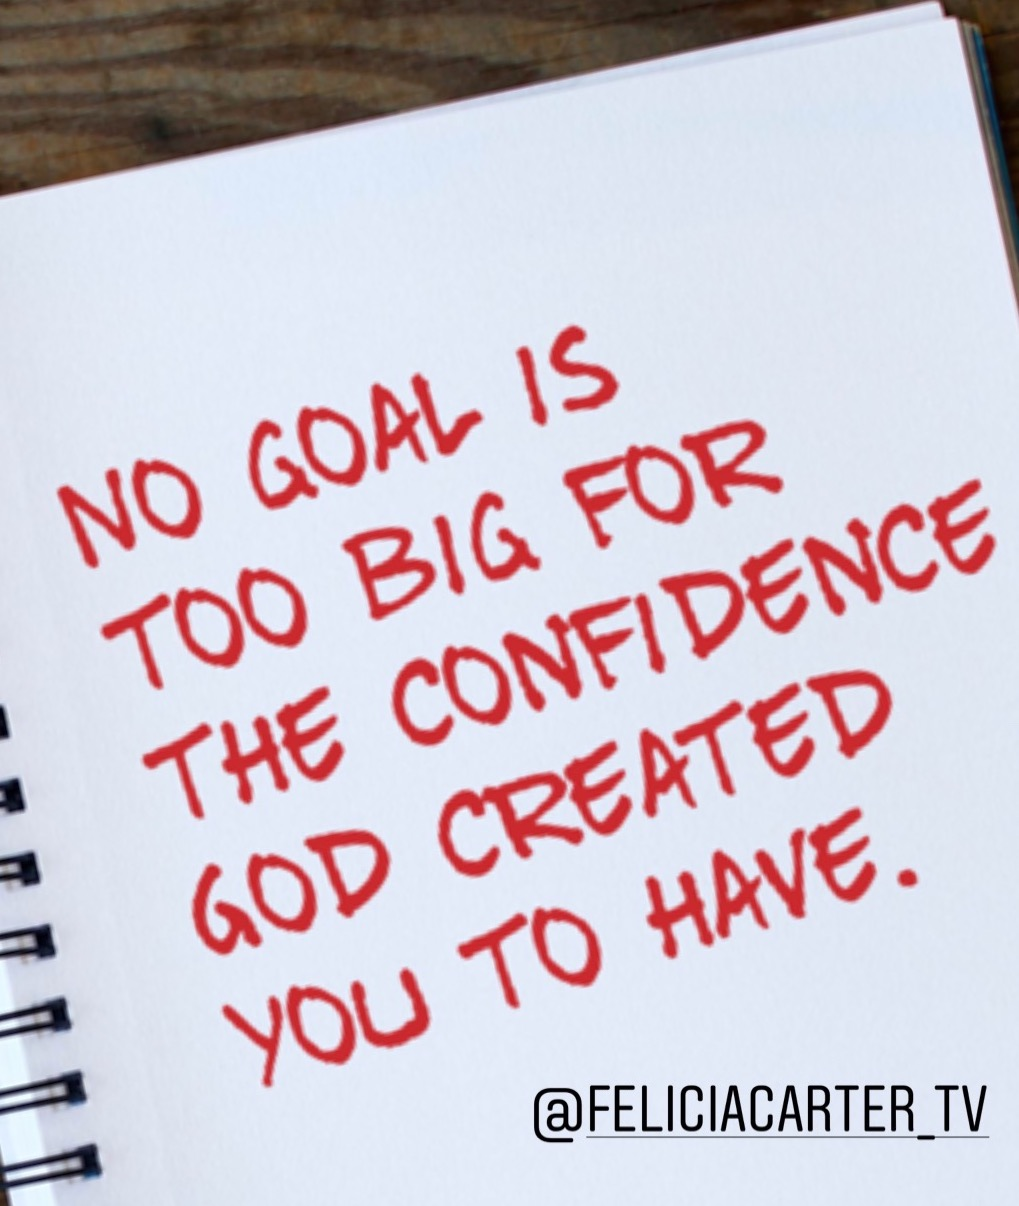 No goal is too big for the confidence God created you to have